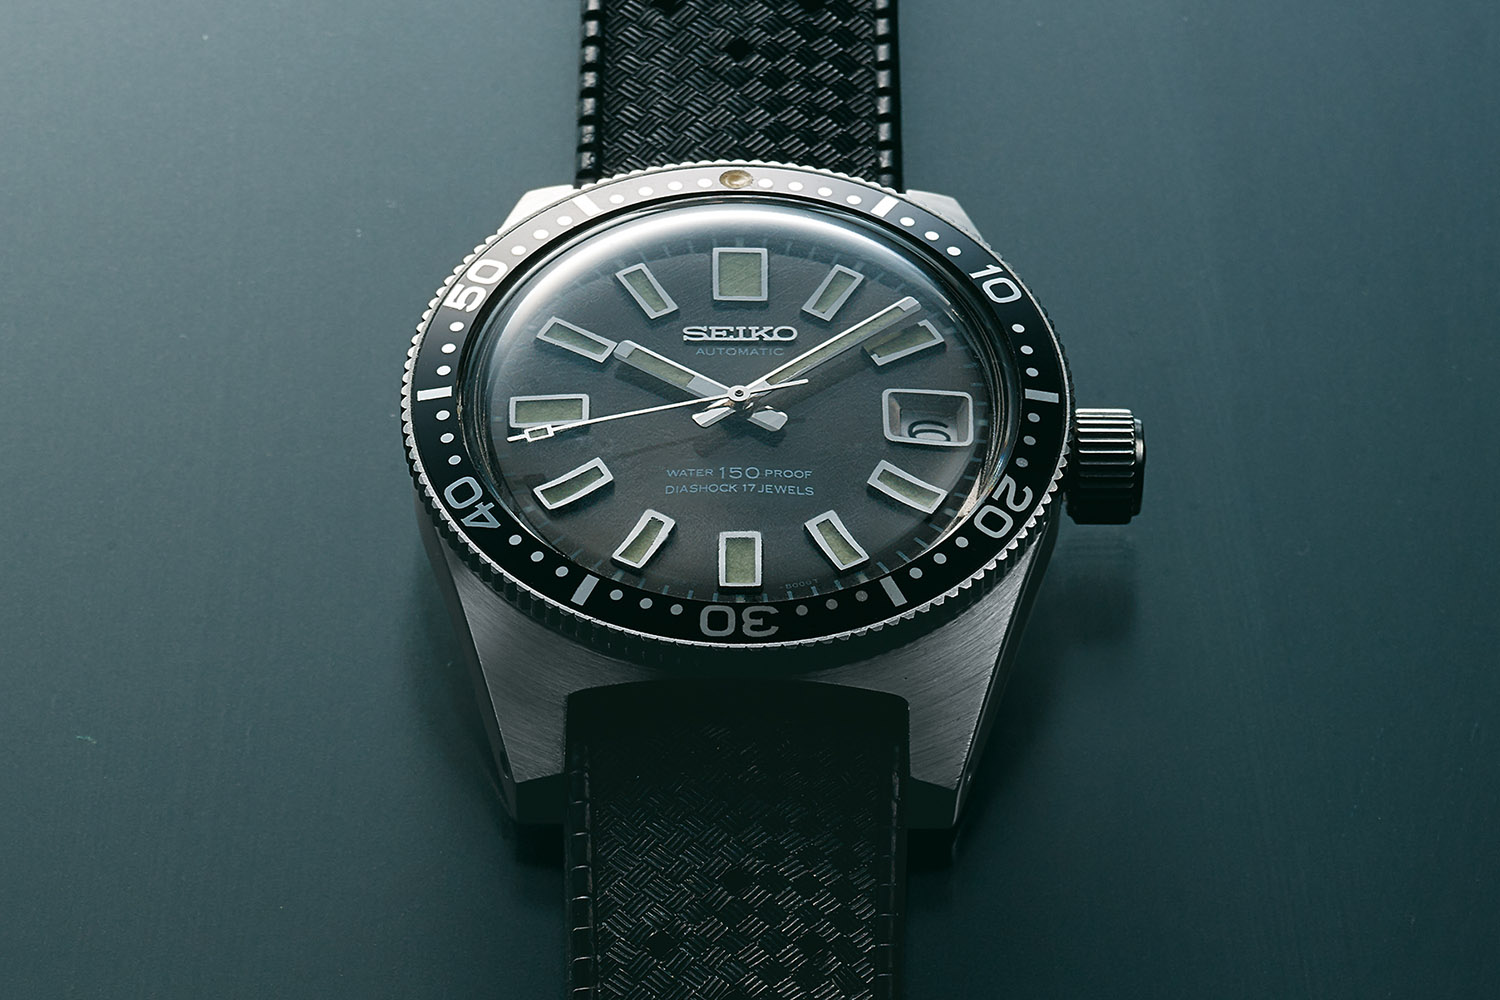 Seiko-62Mas-1965-Seiko-First-Dive-Watch